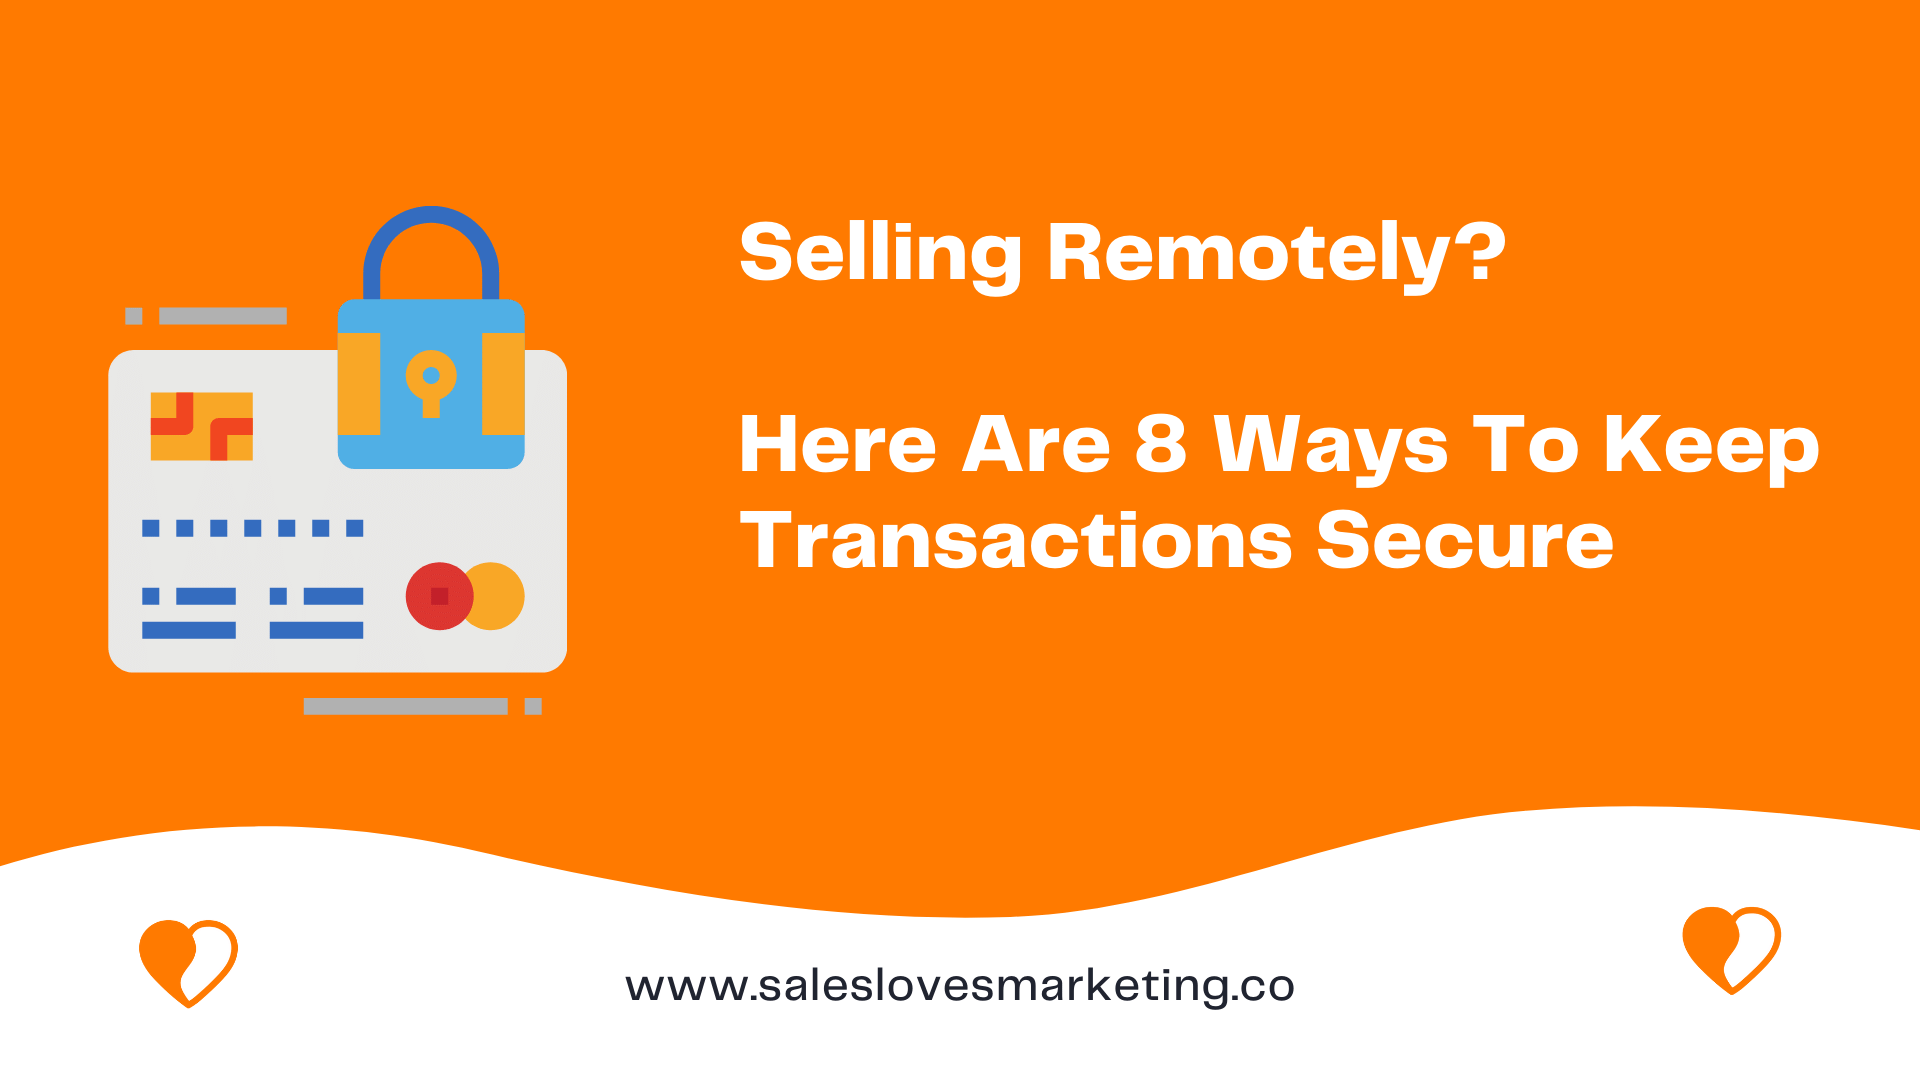 How to keep your transactions secure when selling remotely